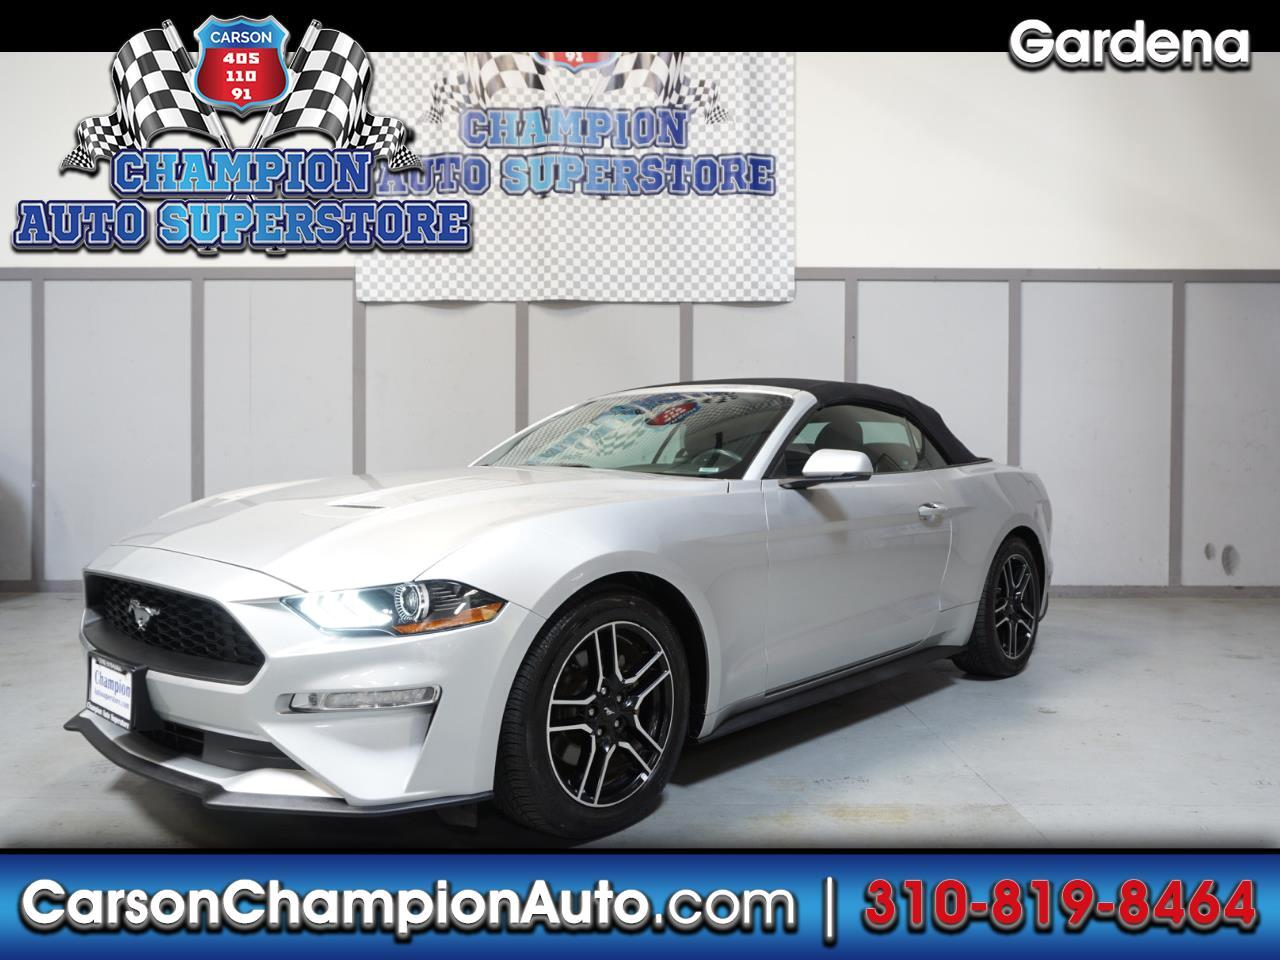 2018 Ford Mustang 2dr Conv EcoBoost Premium